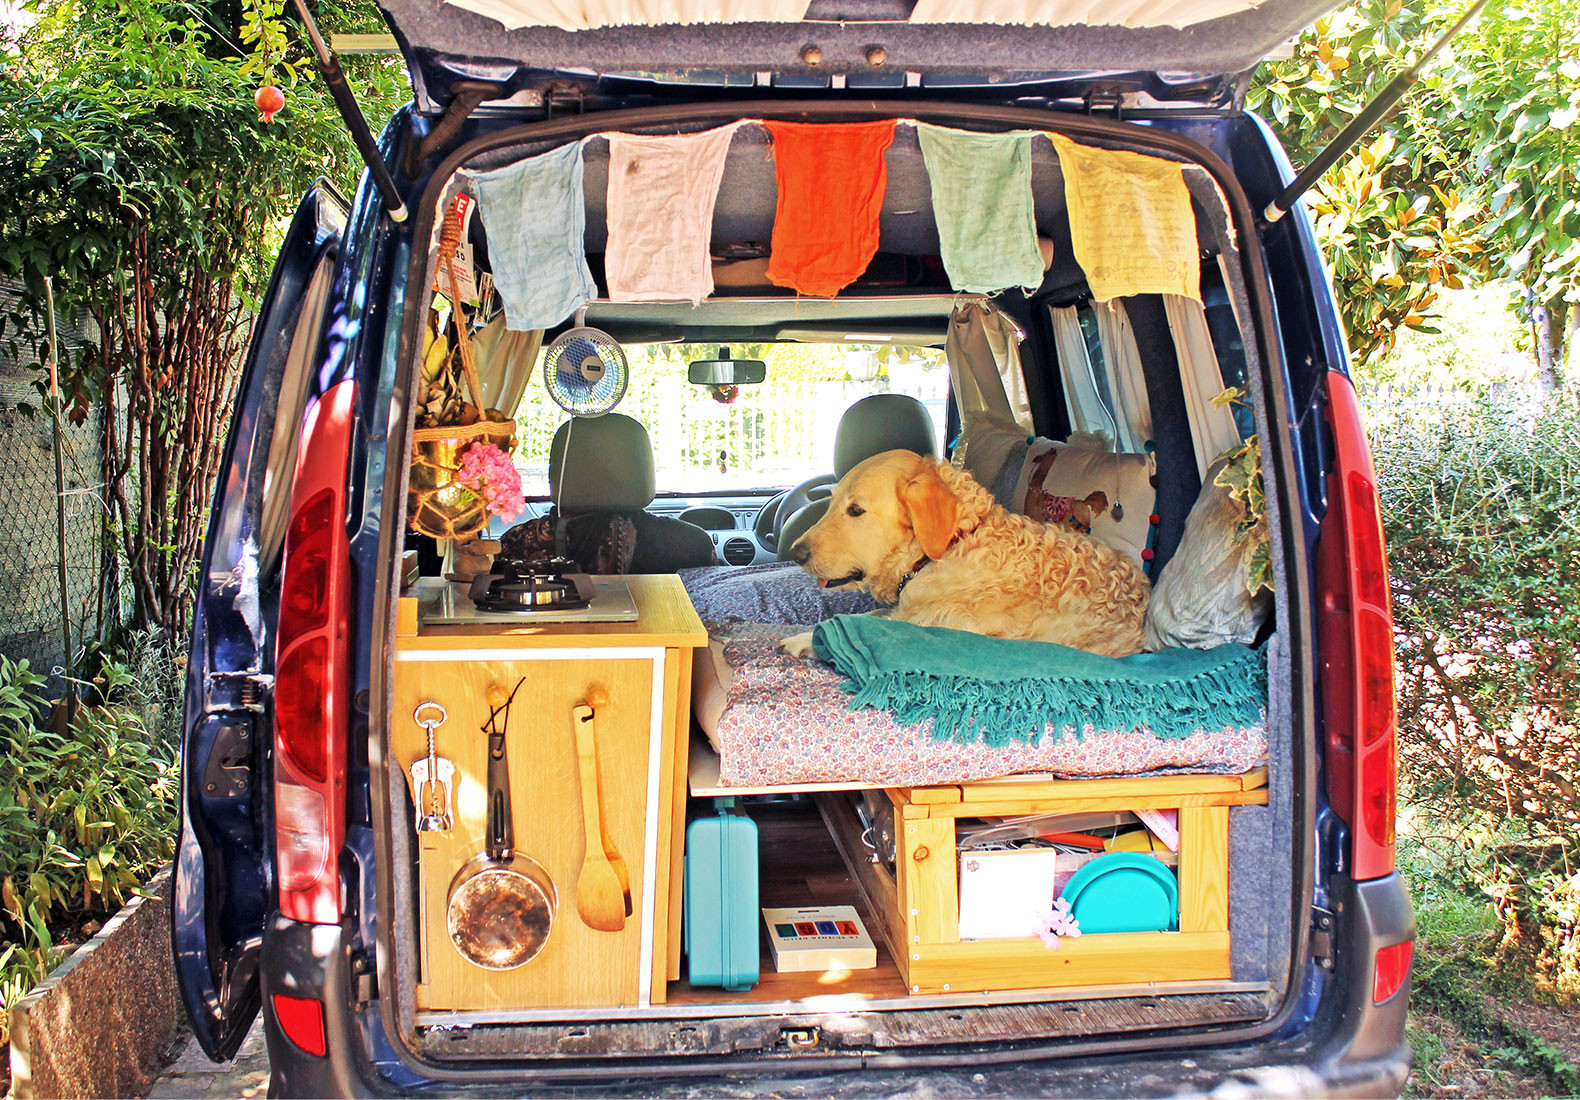 Italian Woman Restores Old Van To Travel The World With Her Rescue Dog